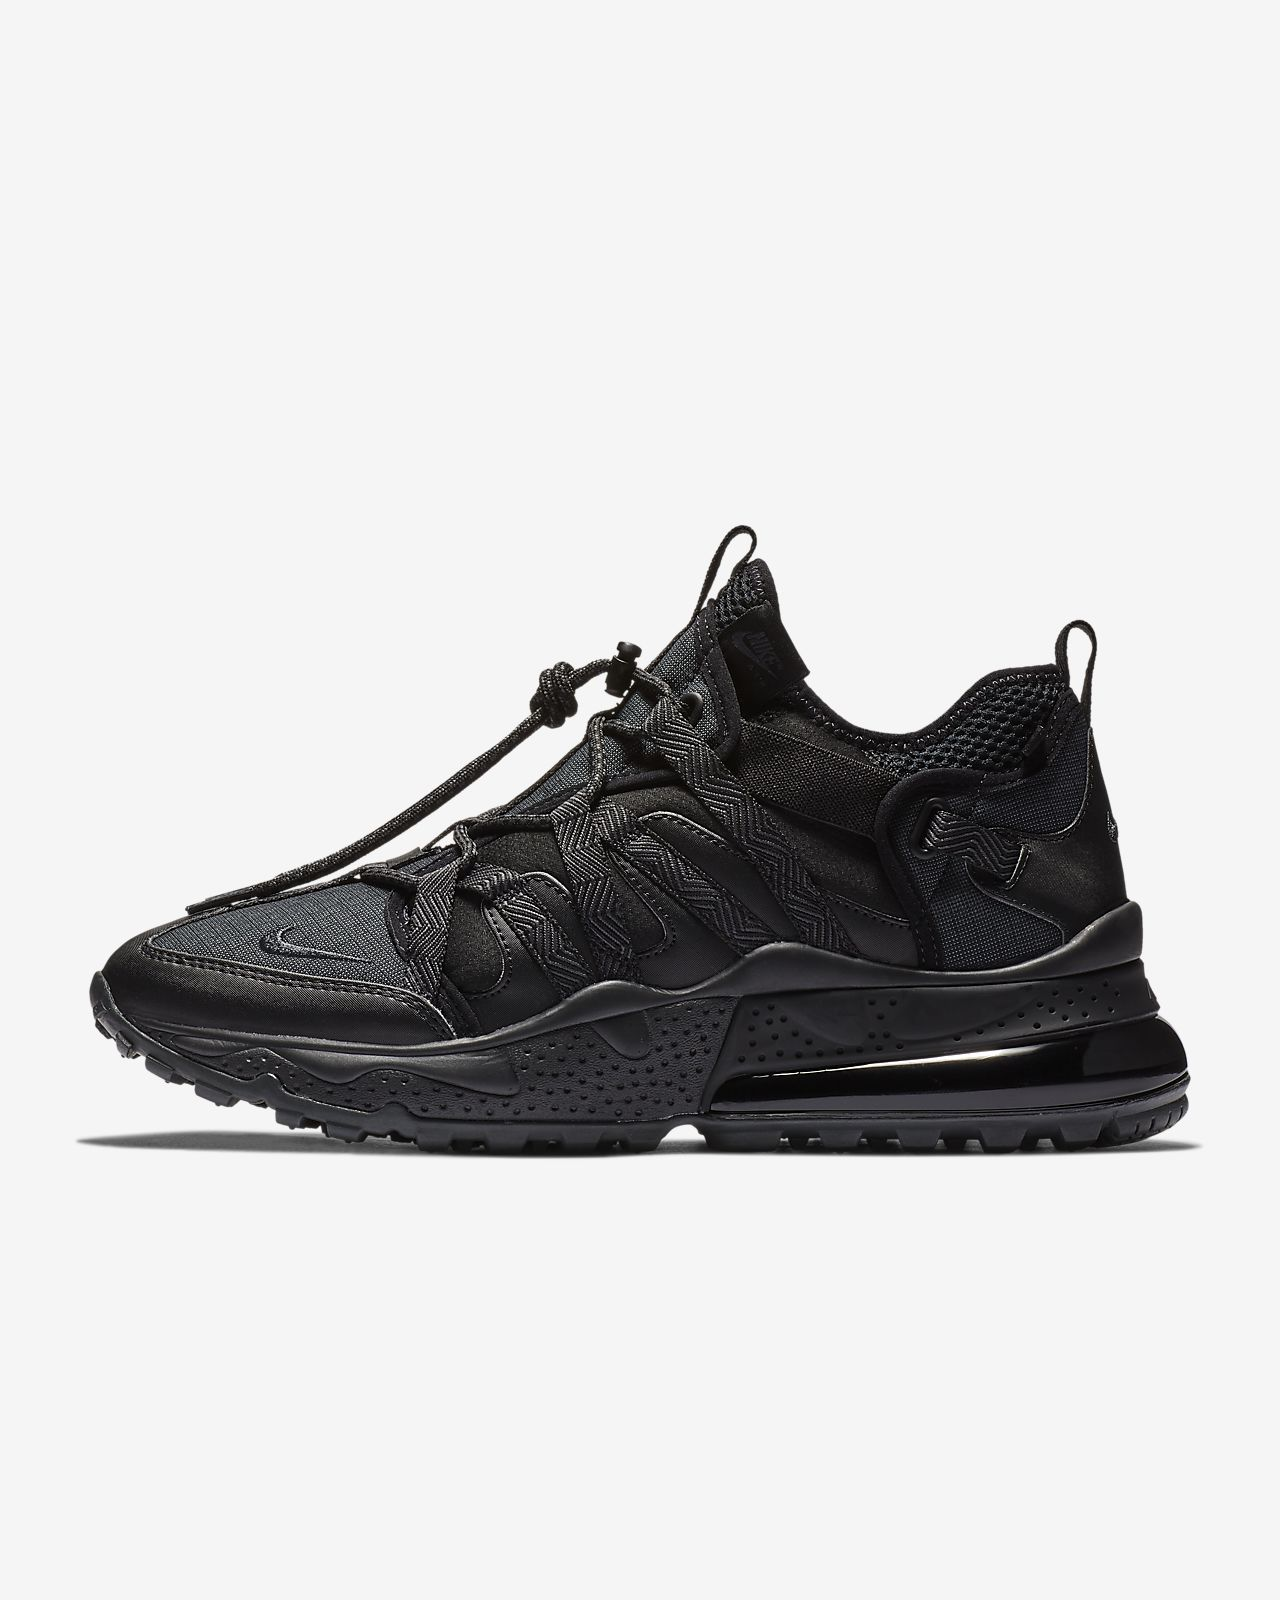 meet 3c0be 6d65a ... Nike Air Max 270 Bowfin Men s Shoe